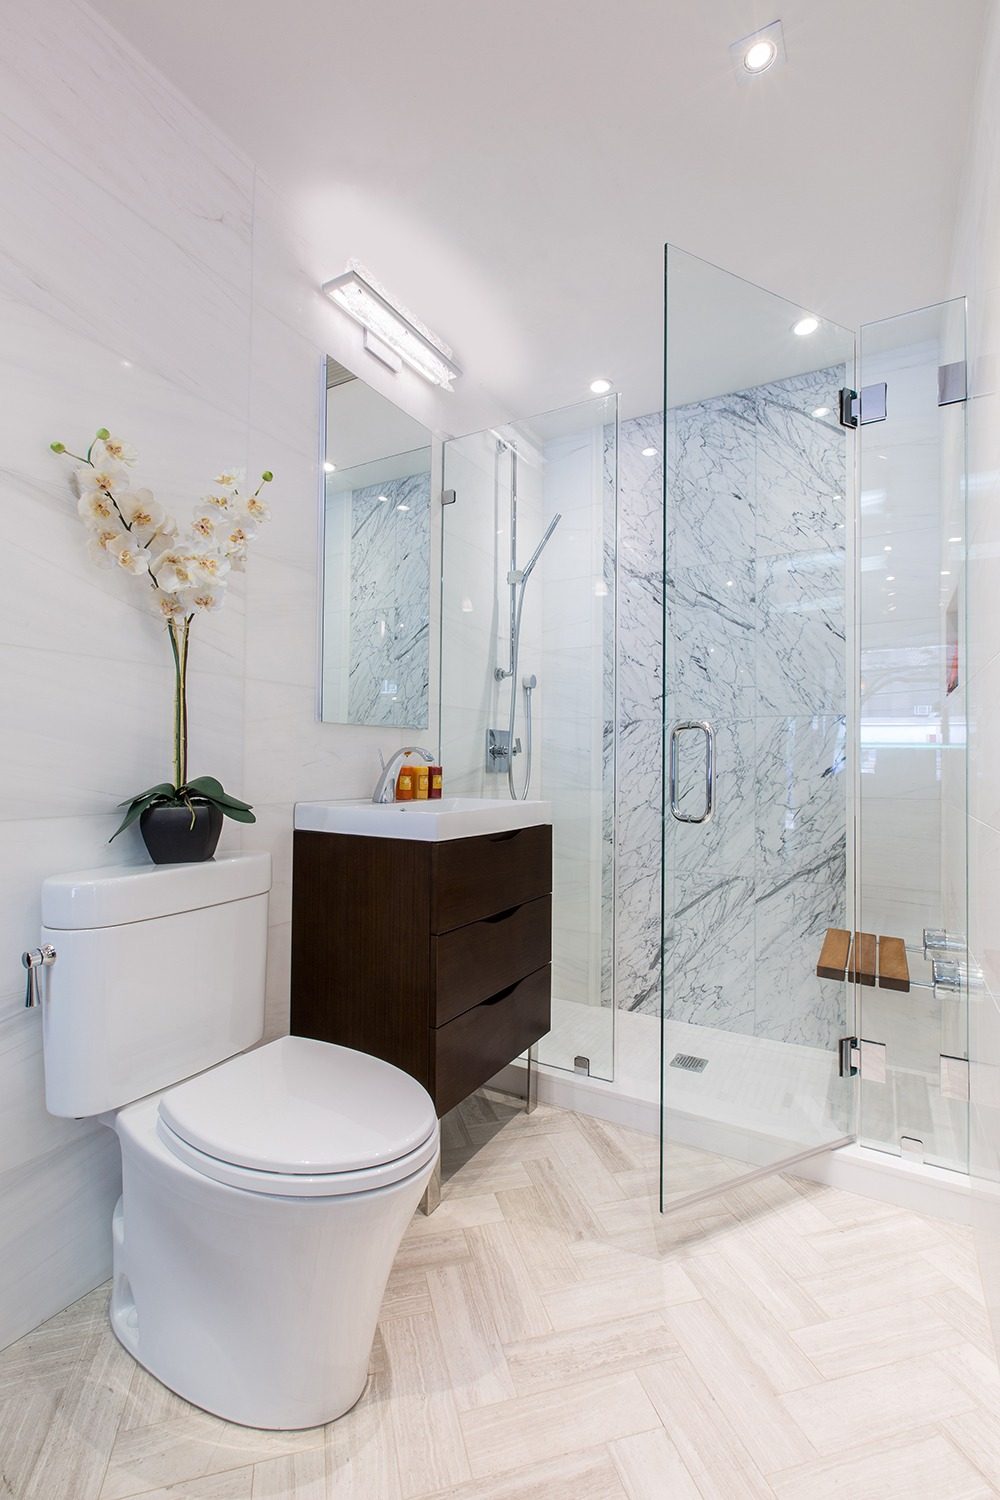 Showroom Bathroom - Berceli Interior Remodeling, New York